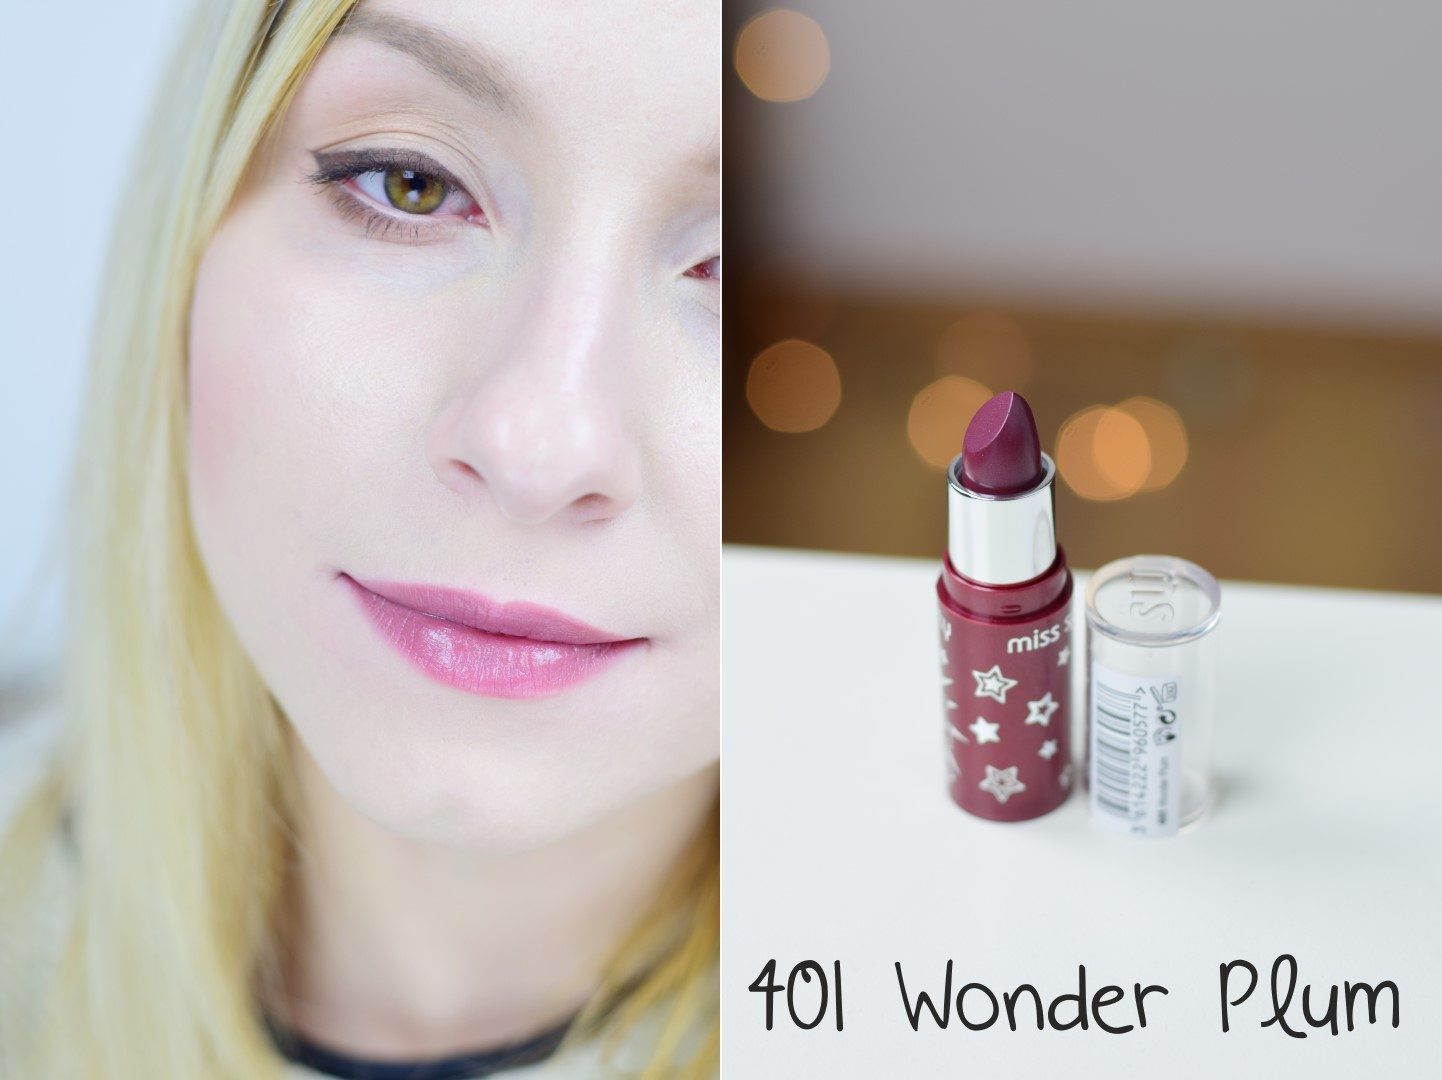 miss_sporty_wonder_smooth_blog_opinia_recenzja_swatche_wonder_plum_401